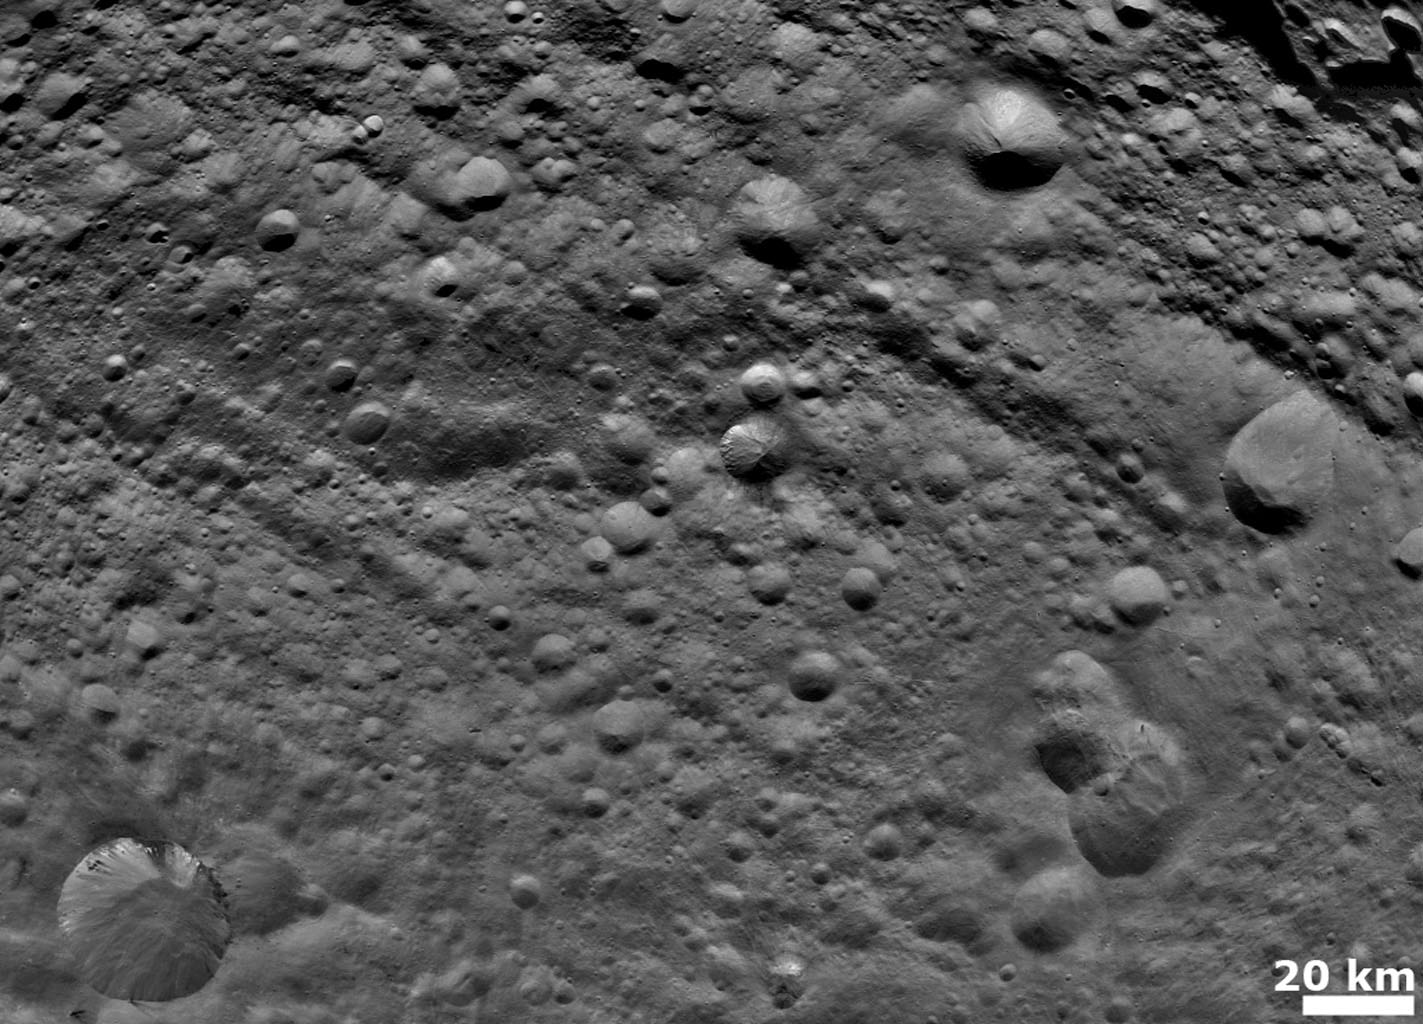 NASA's Dawn spacecraft obtained this image with its framing camera on August 6, 2011. Old and heavily cratered terrain is shown on Vesta. The framing camera has a resolution about 280 yards (260 meters) per pixel.